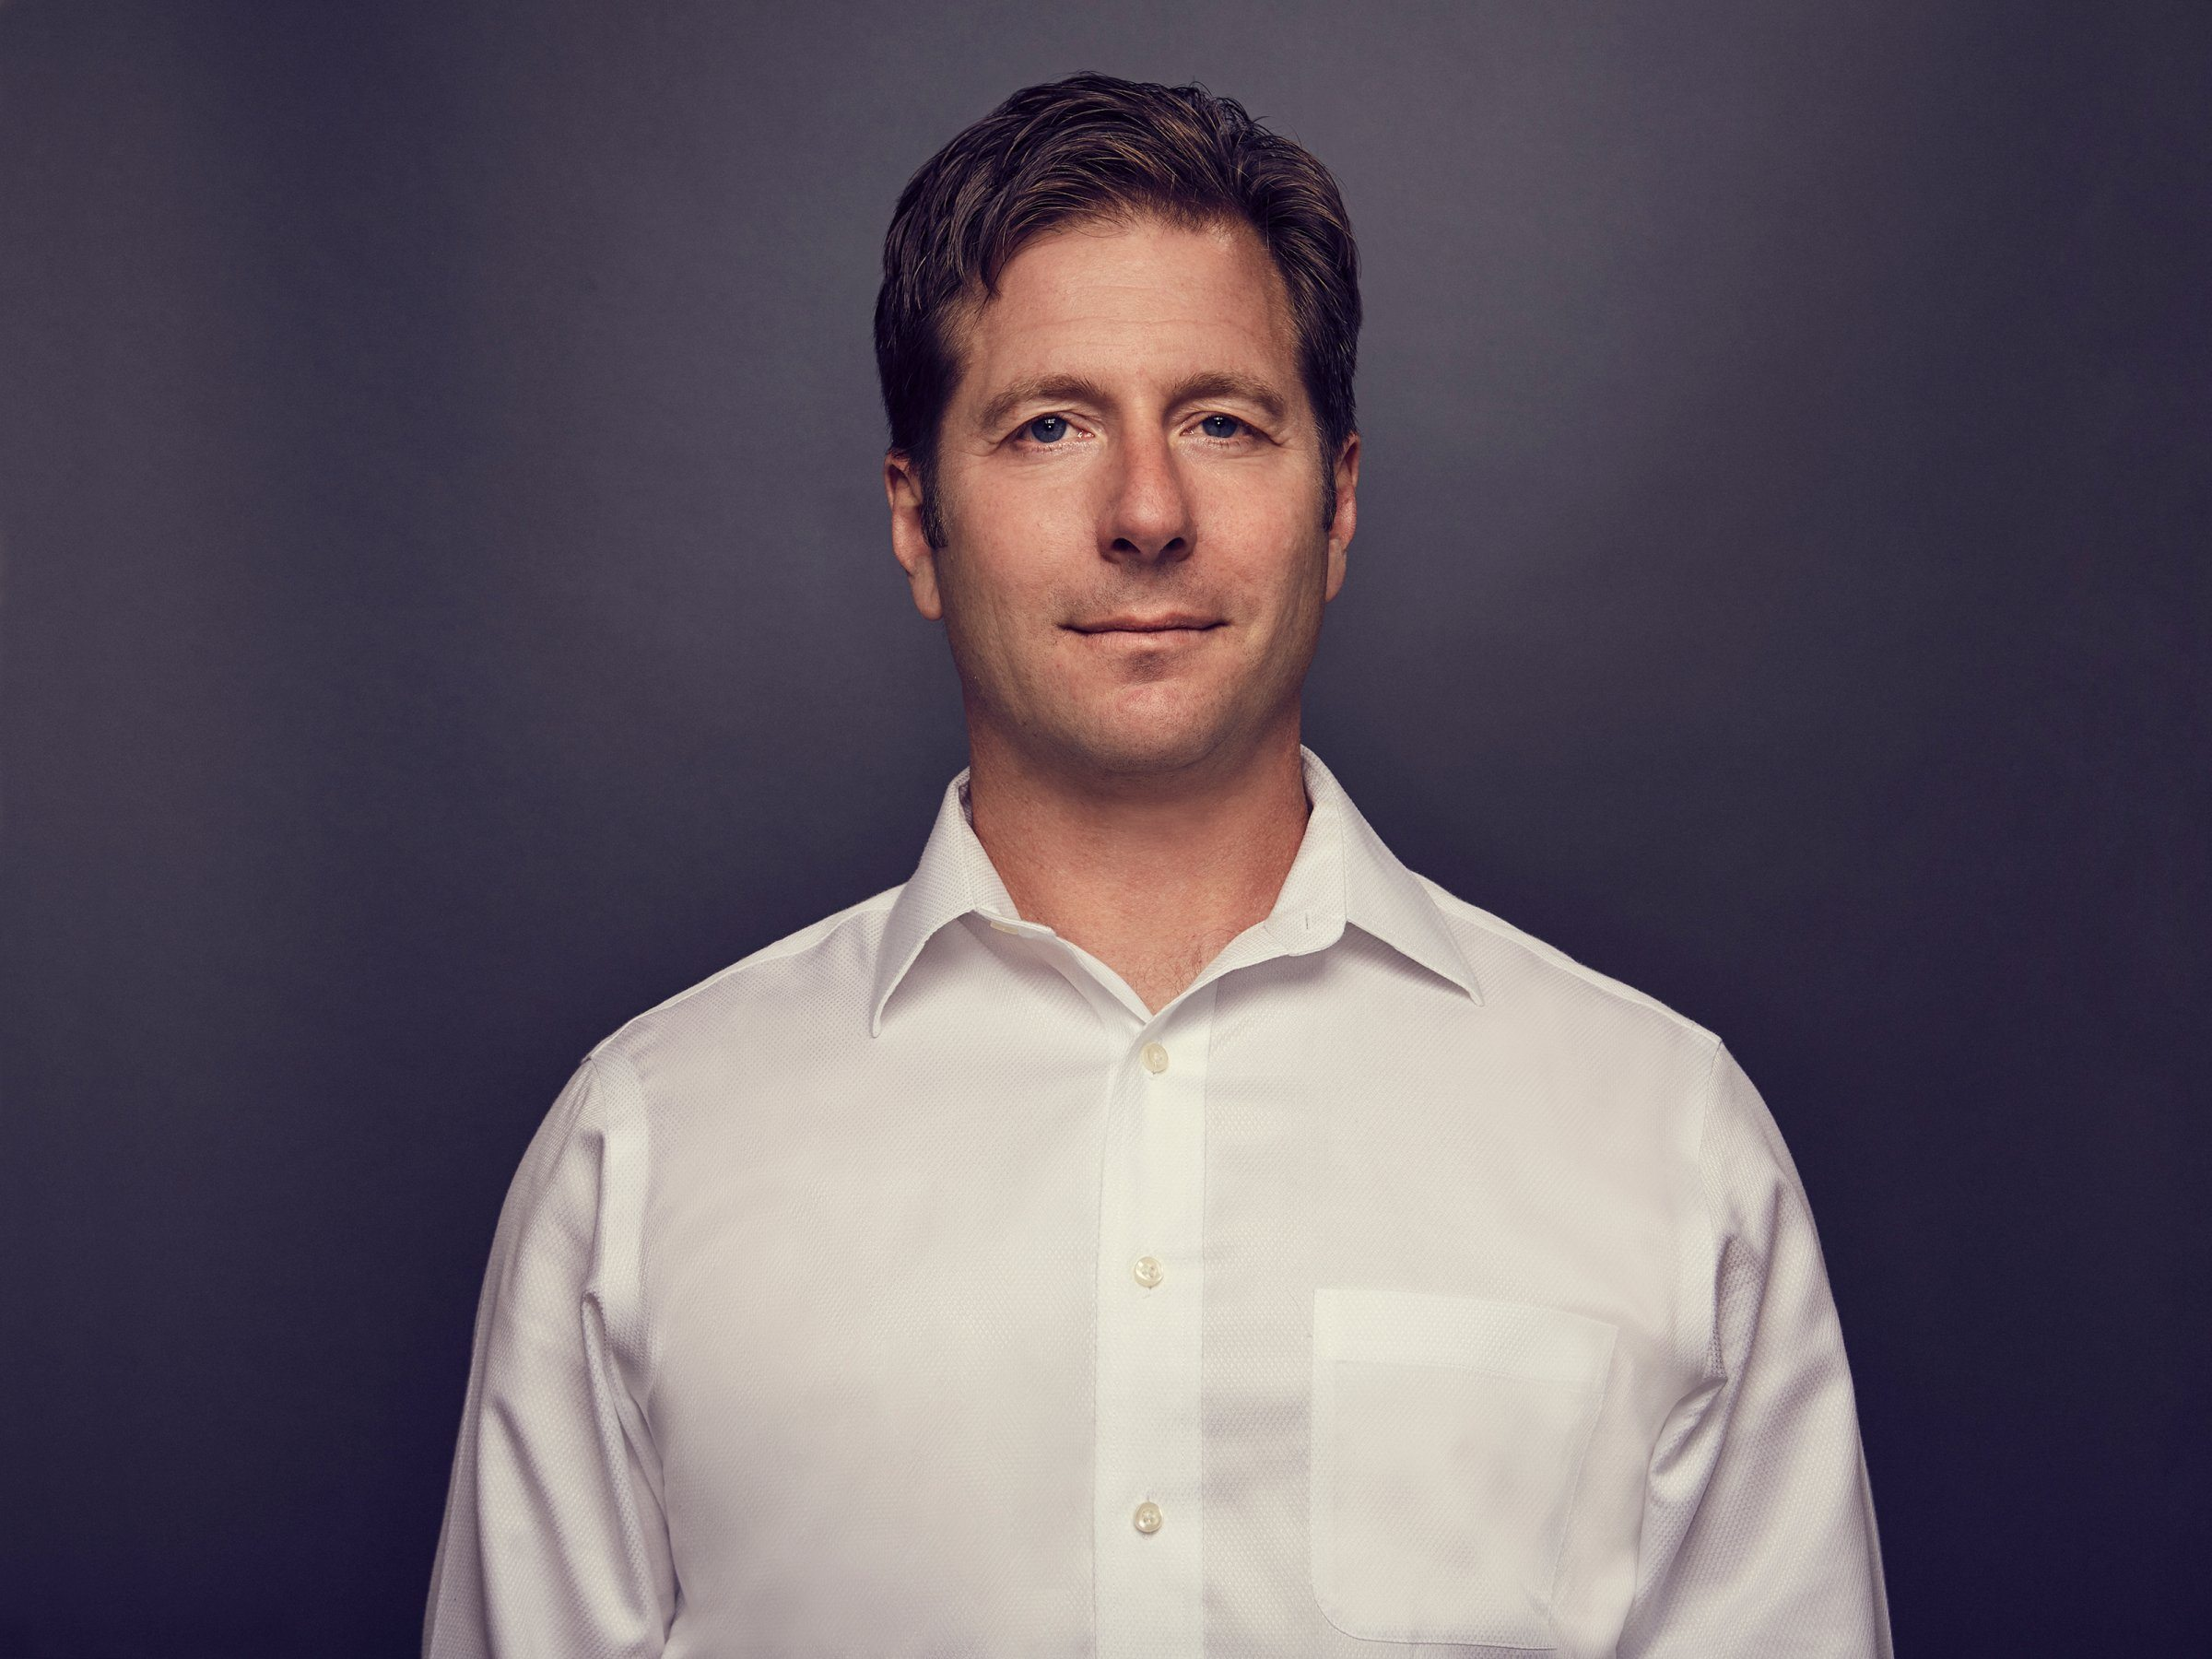 Josh Stein, CEO and CoFounder of Harbor